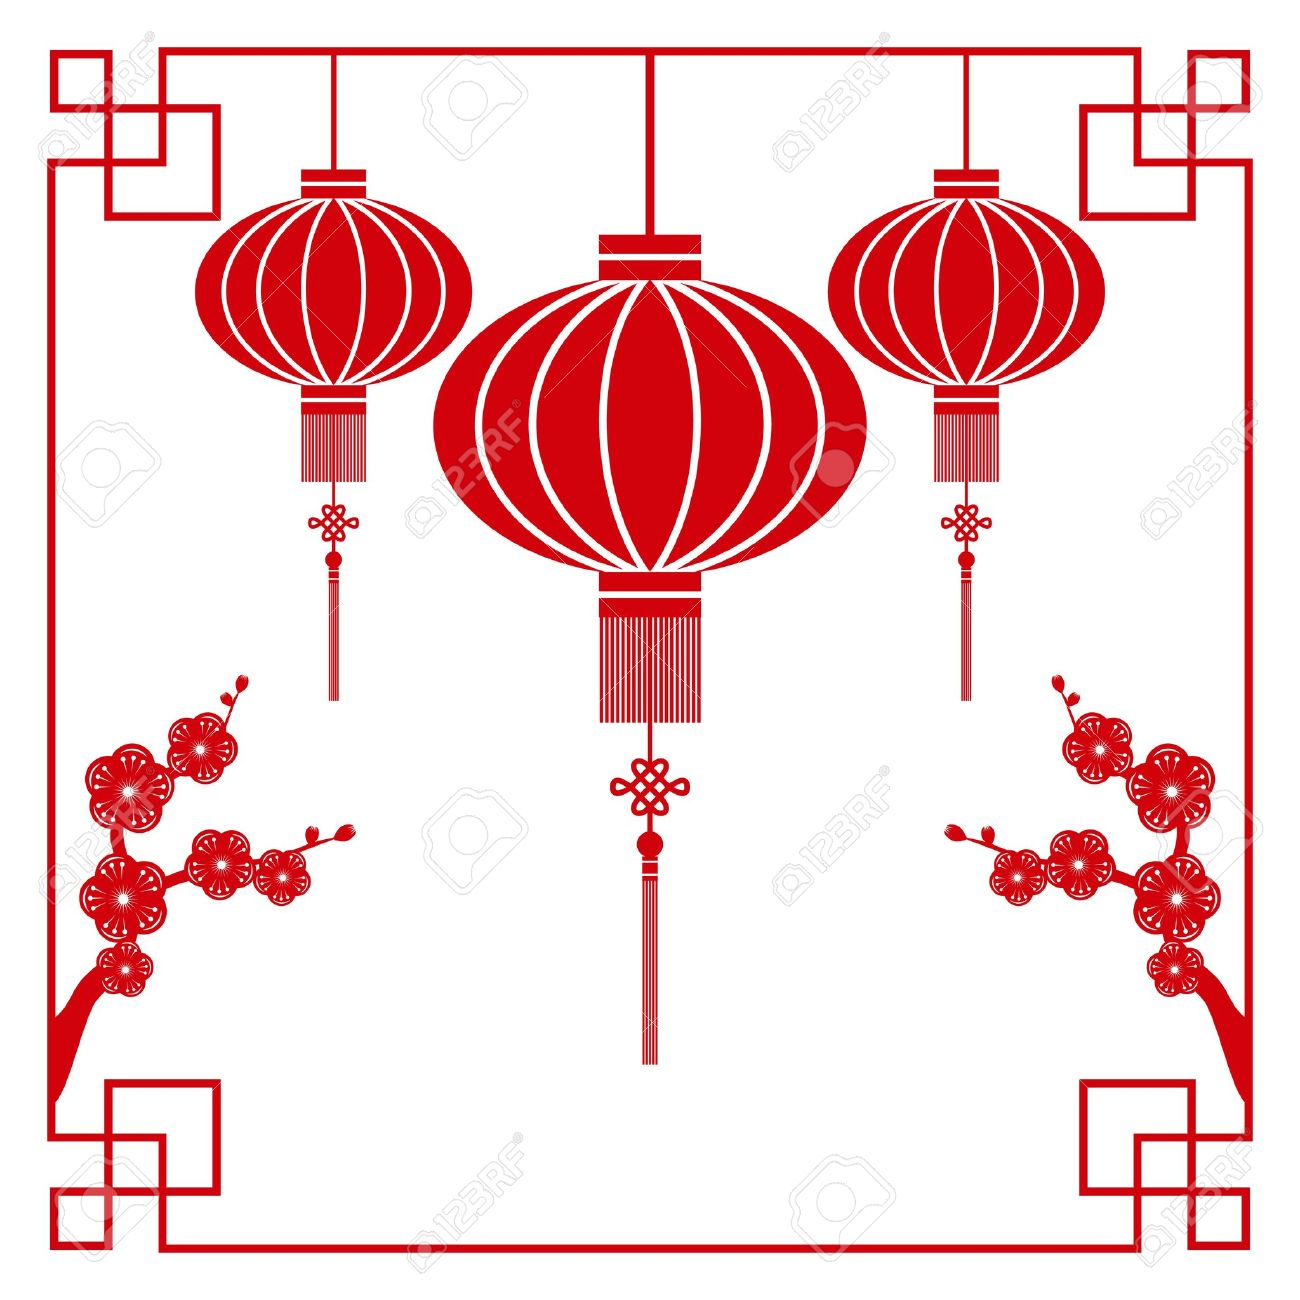 16,567 Chinese Motif Stock Vector Illustration And Royalty Free ...